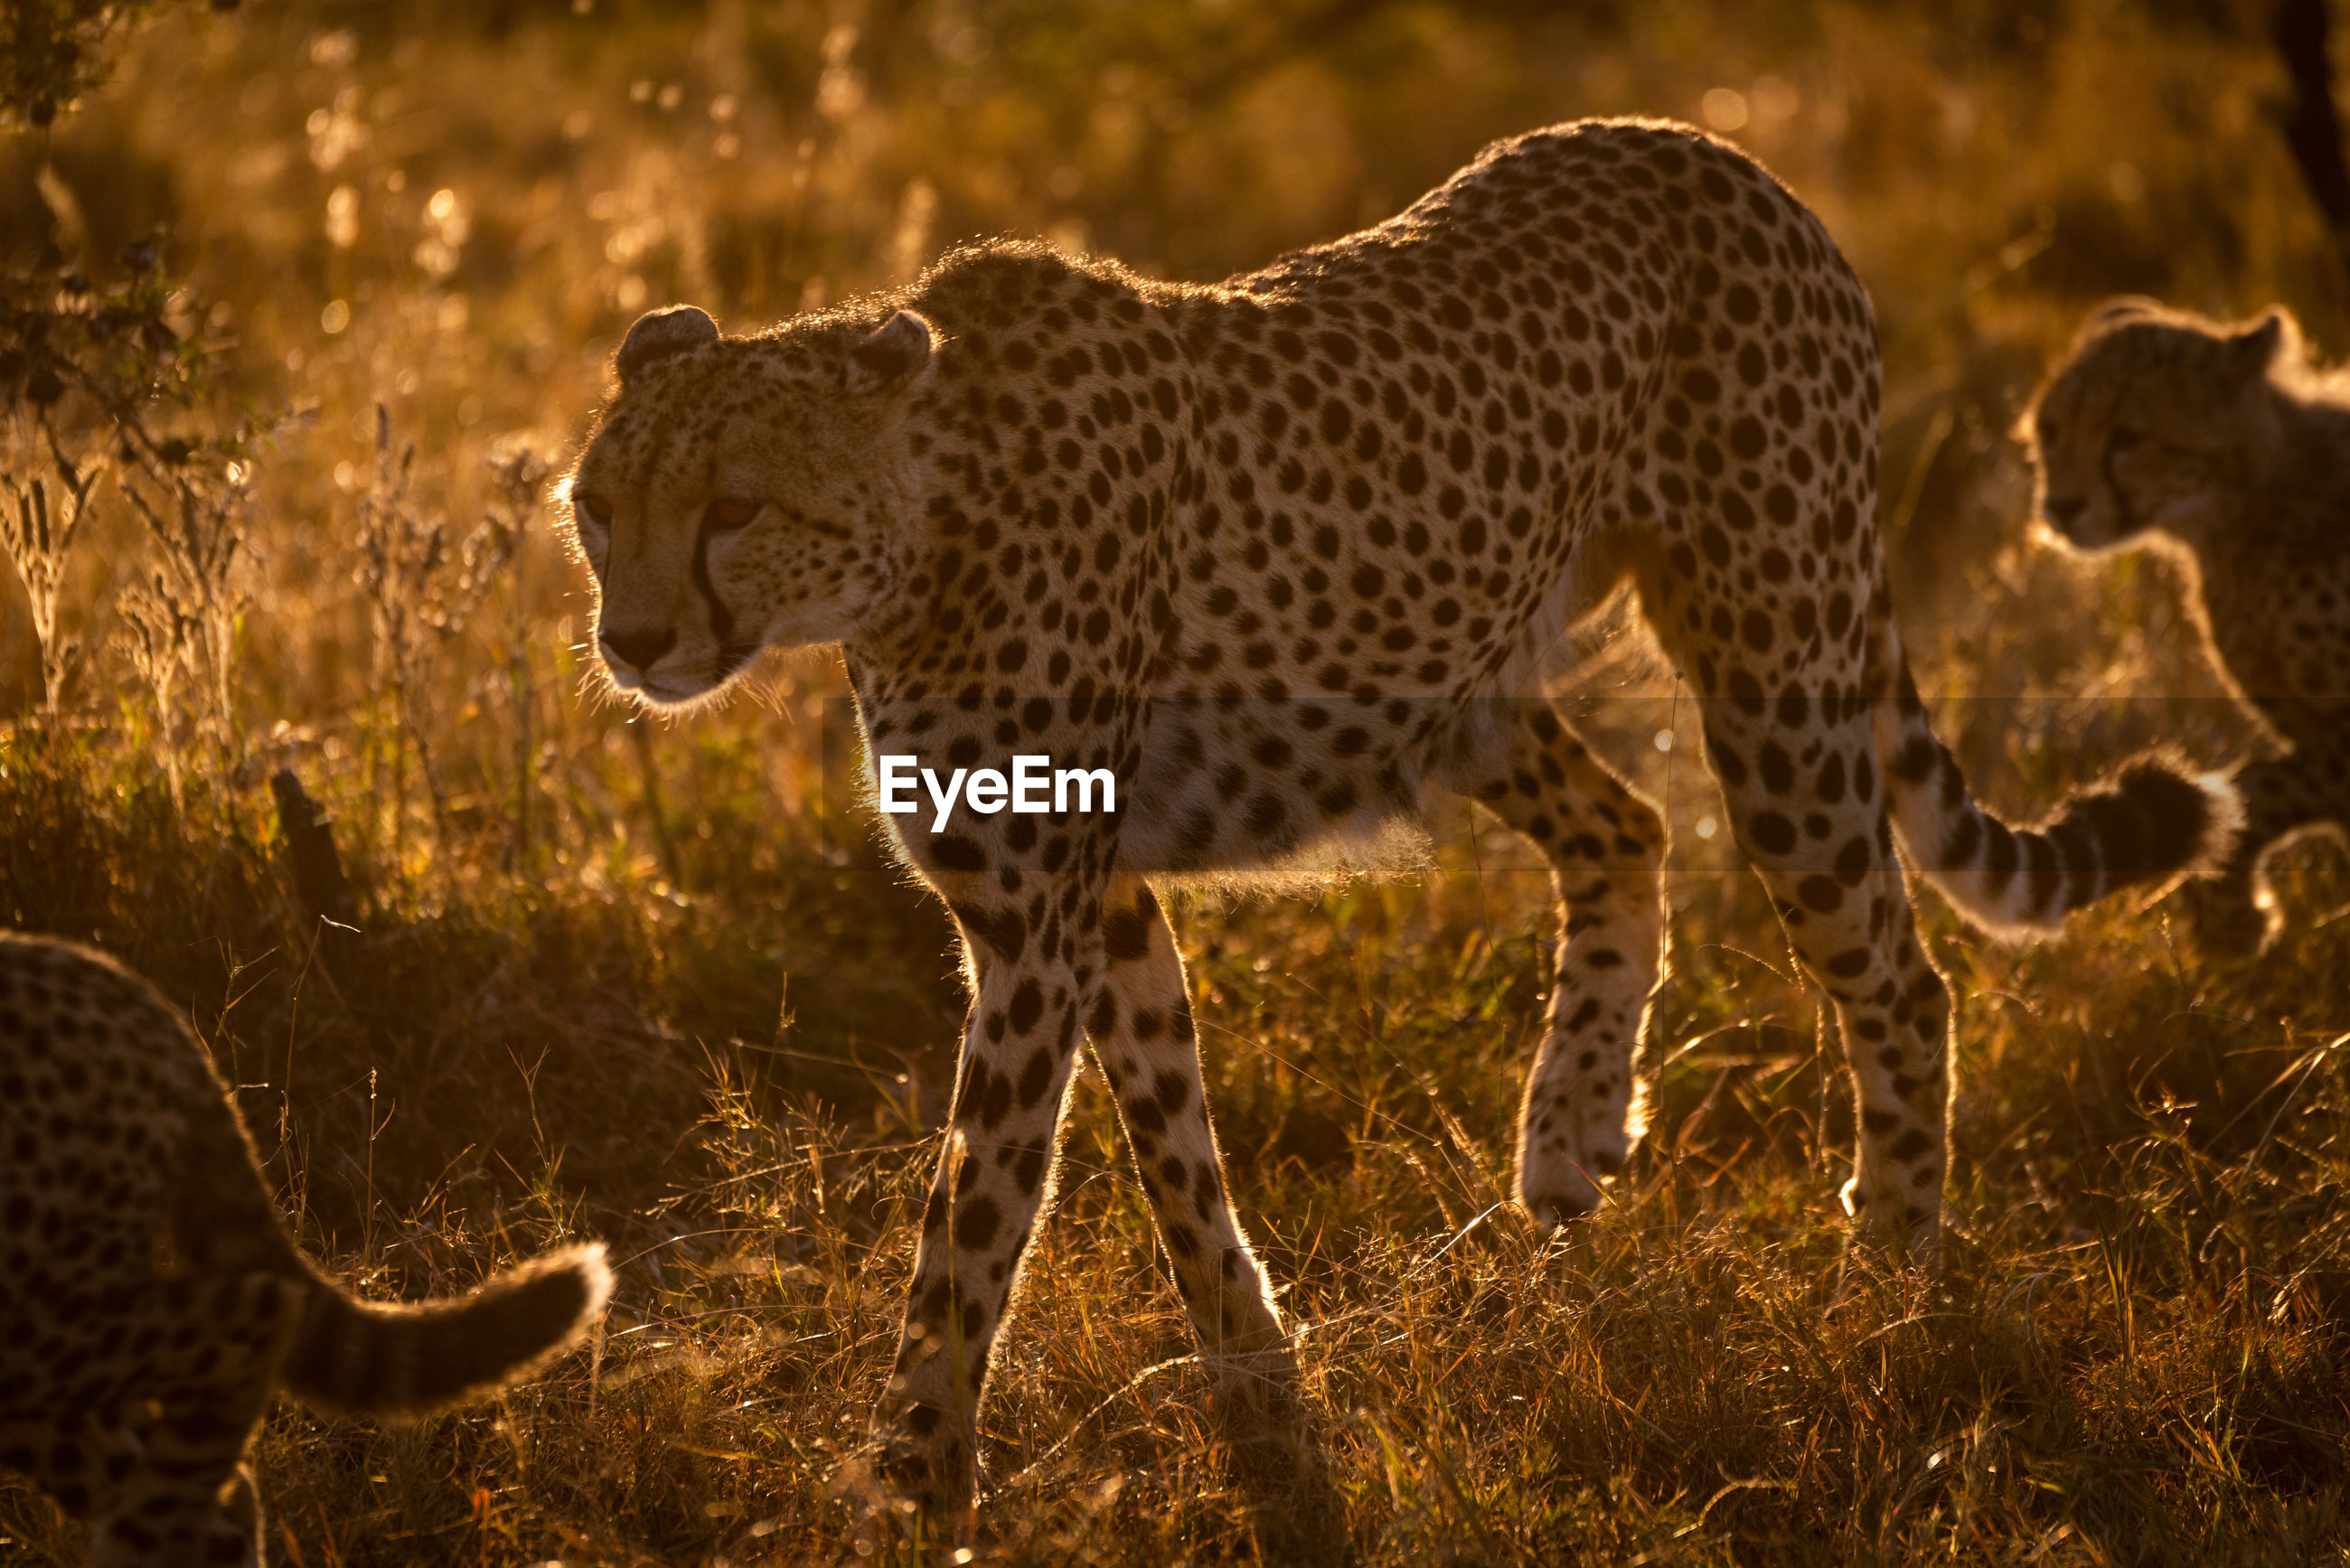 Cheetahs walking on grassy field during sunset